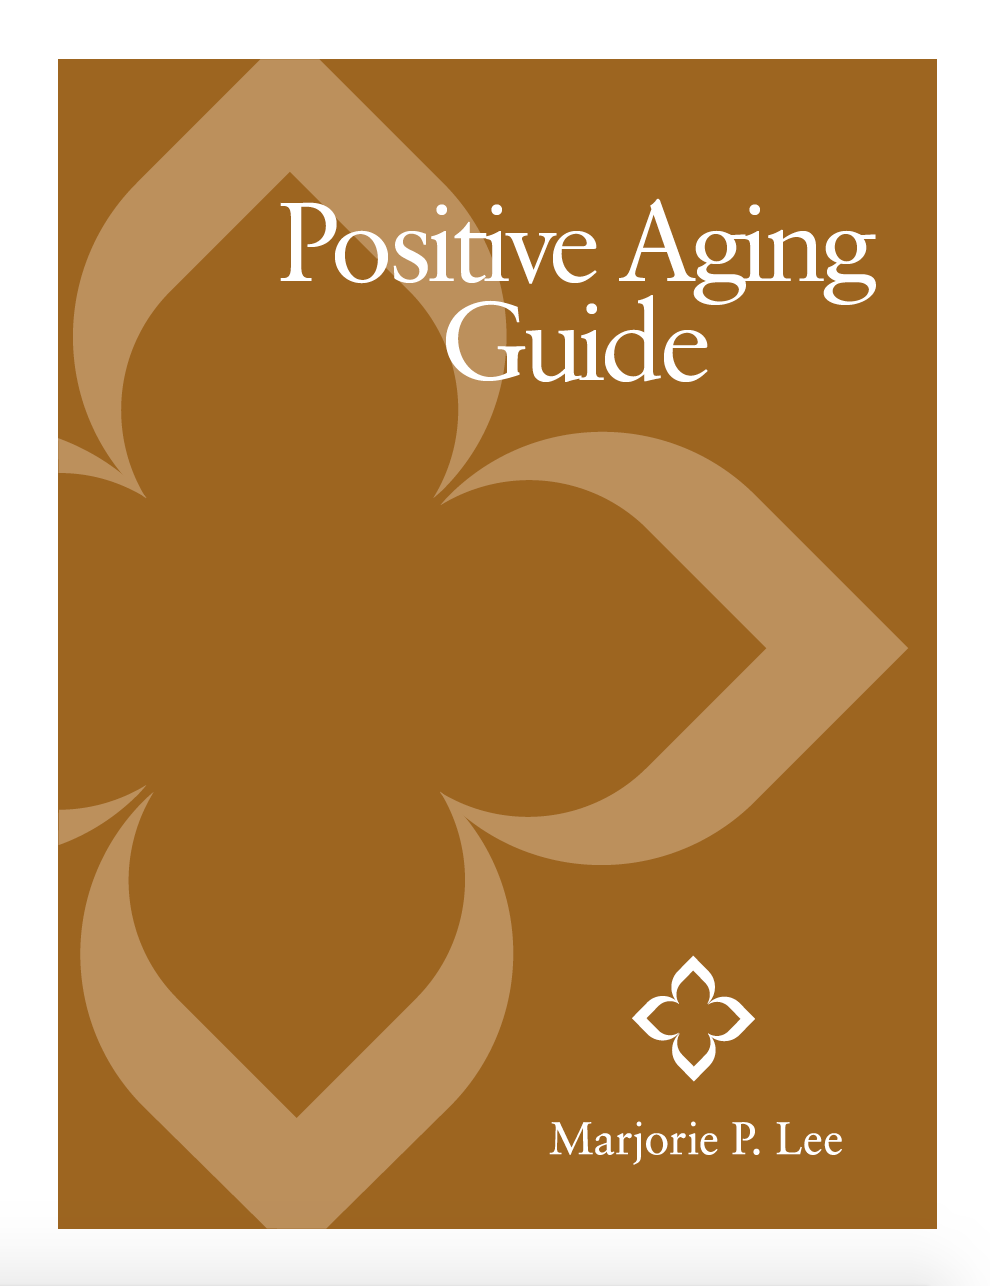 Positive Aging Guide